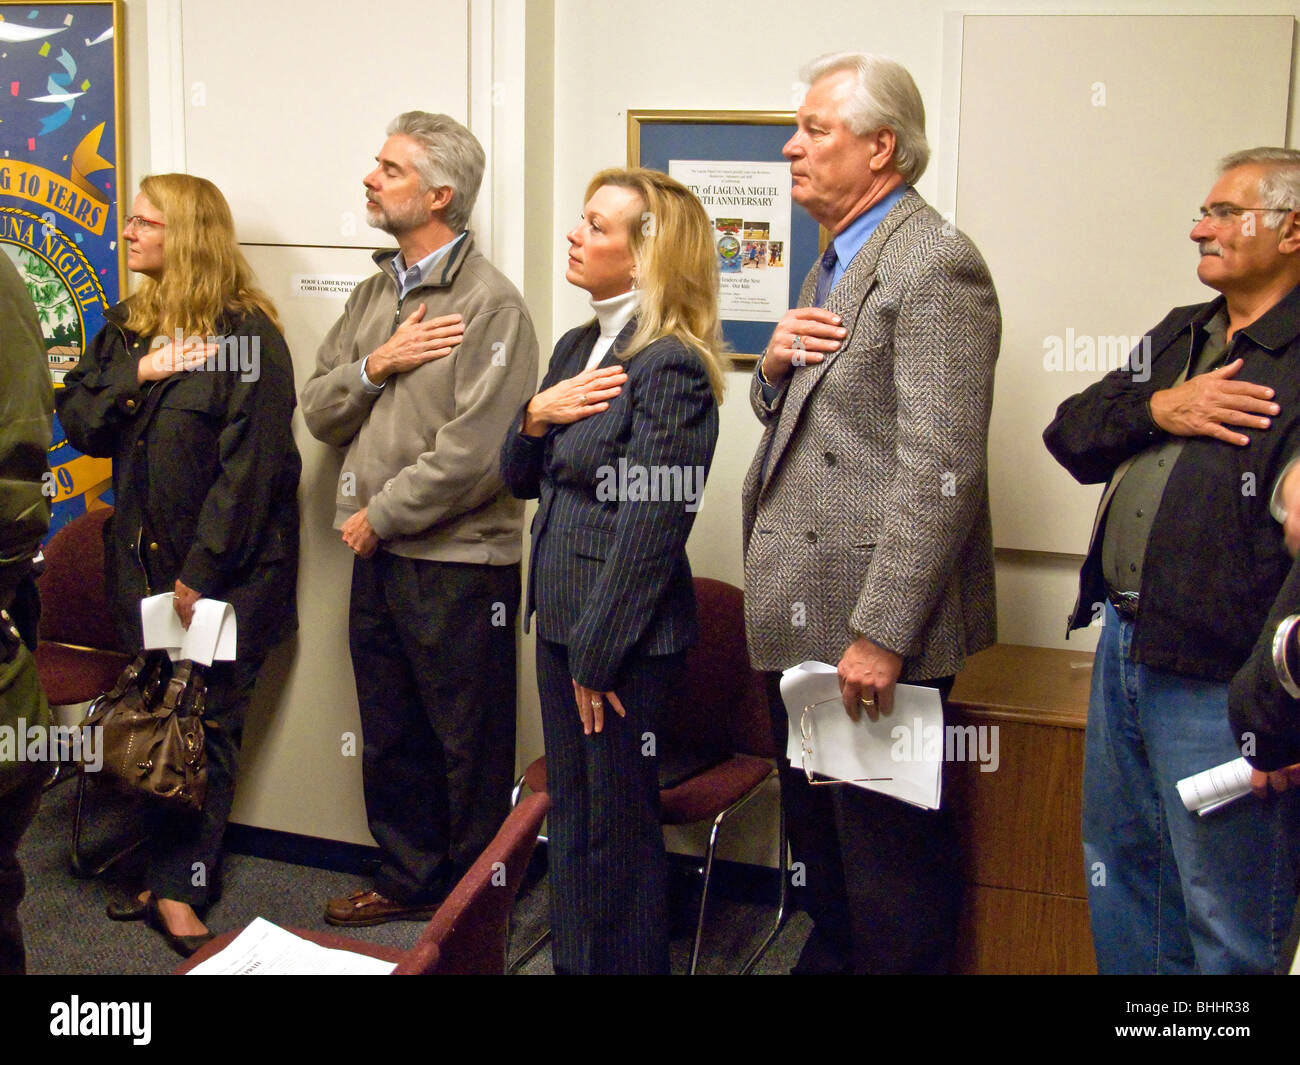 Hands over their hearts, local citizens recite the Pledge of Allegiance at the opening of a city council meeting - Stock Image